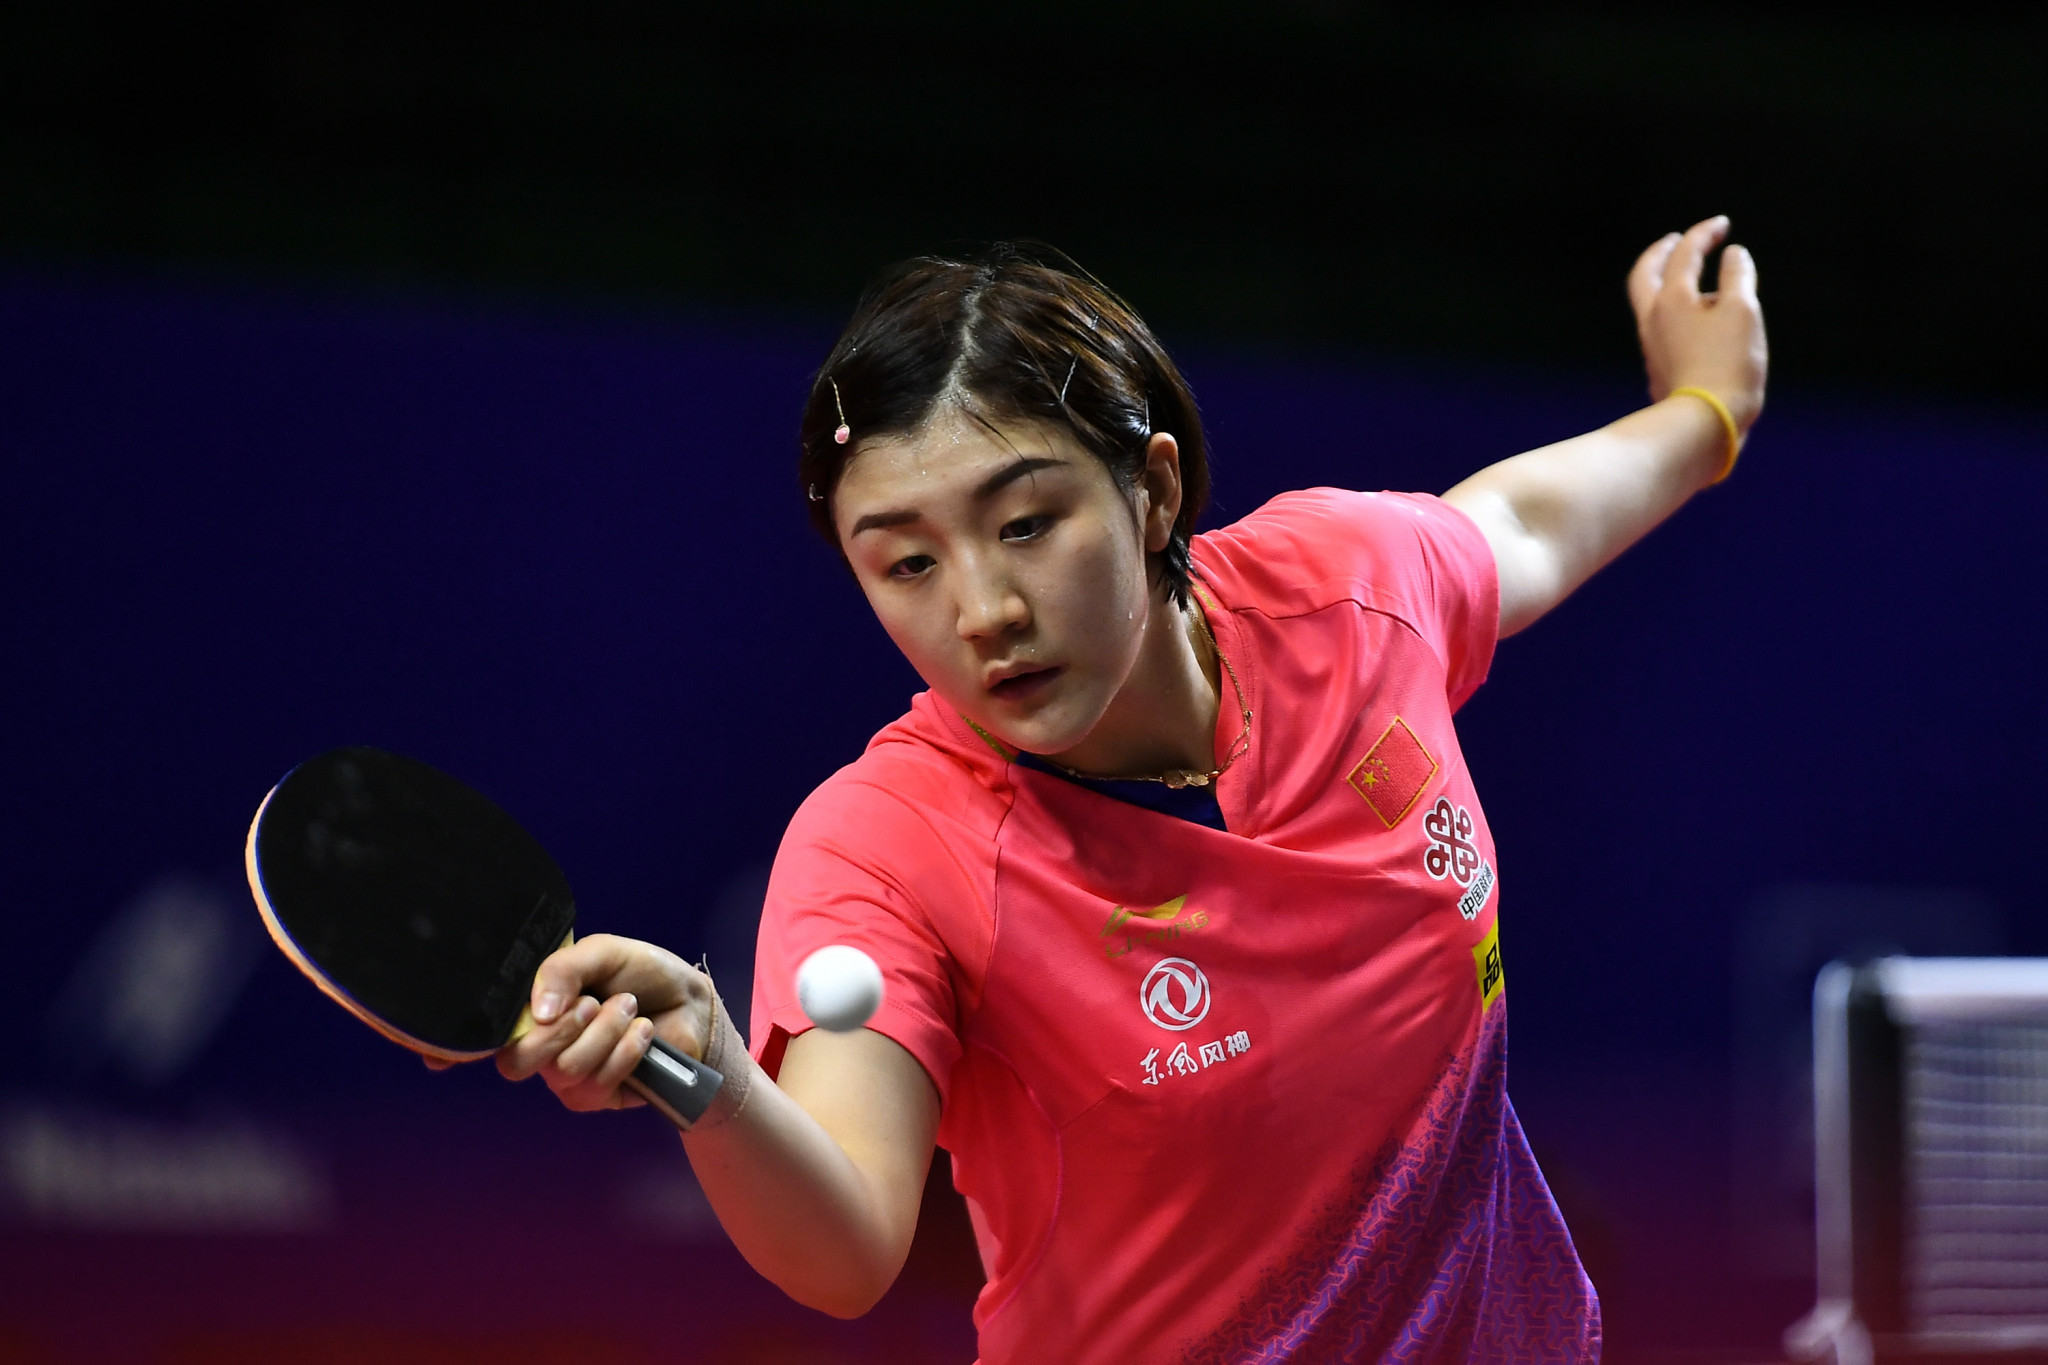 Chen Meng is through to the last 16 of the women's singles event ©Getty Images